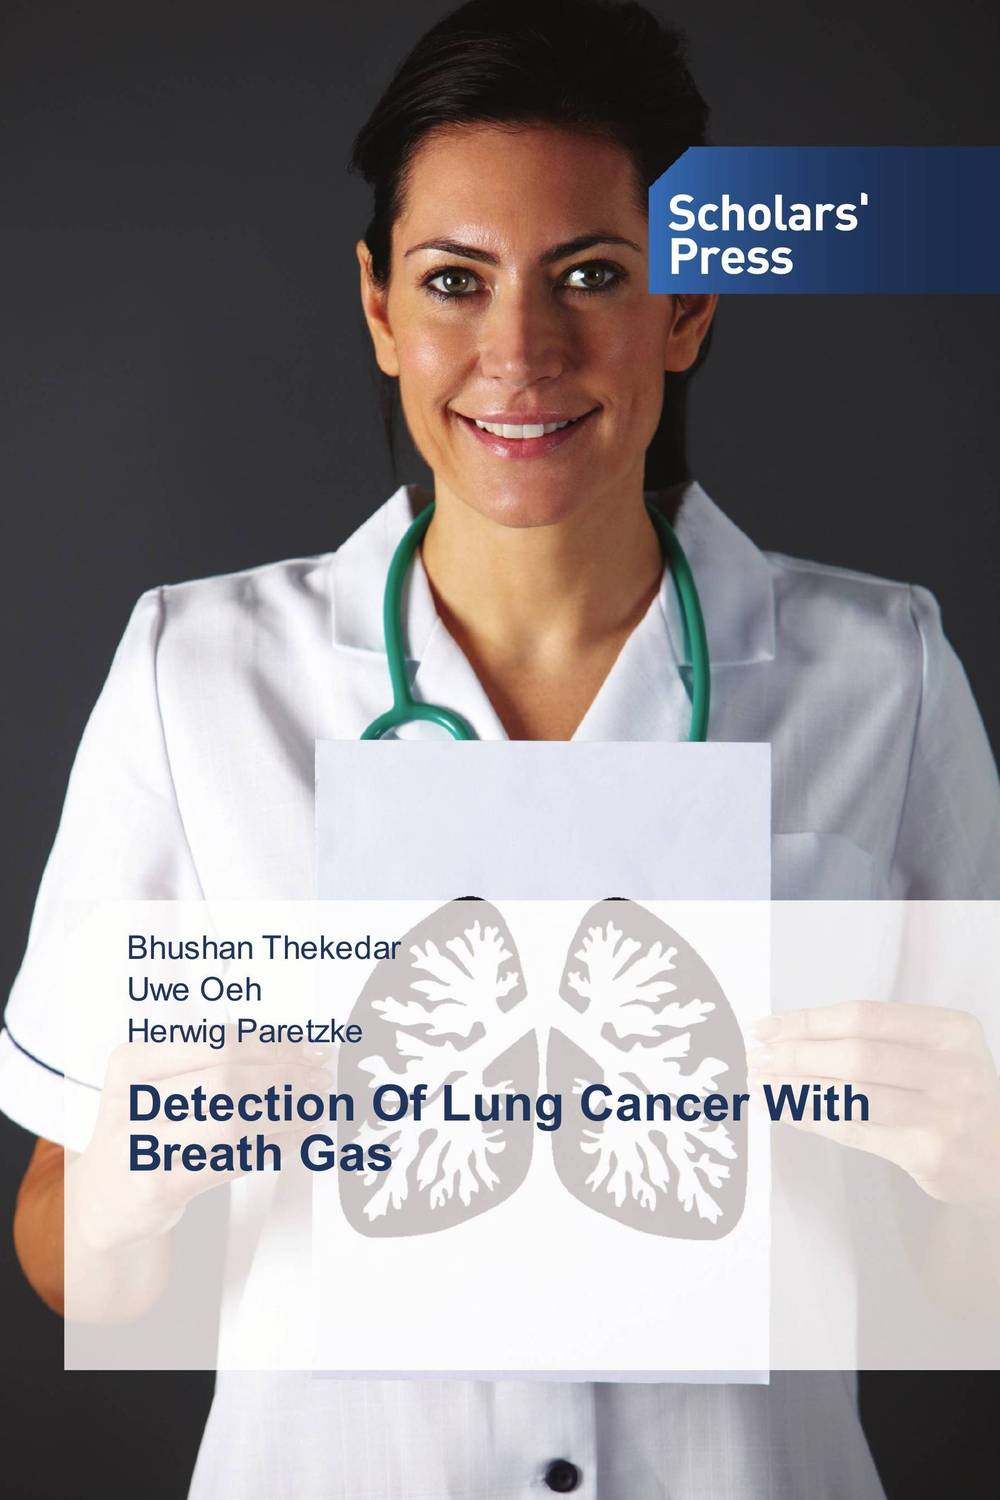 Detection Of Lung Cancer With Breath Gas analysis of tp53 and promoter hypermethylation of mgmt in lung cancer